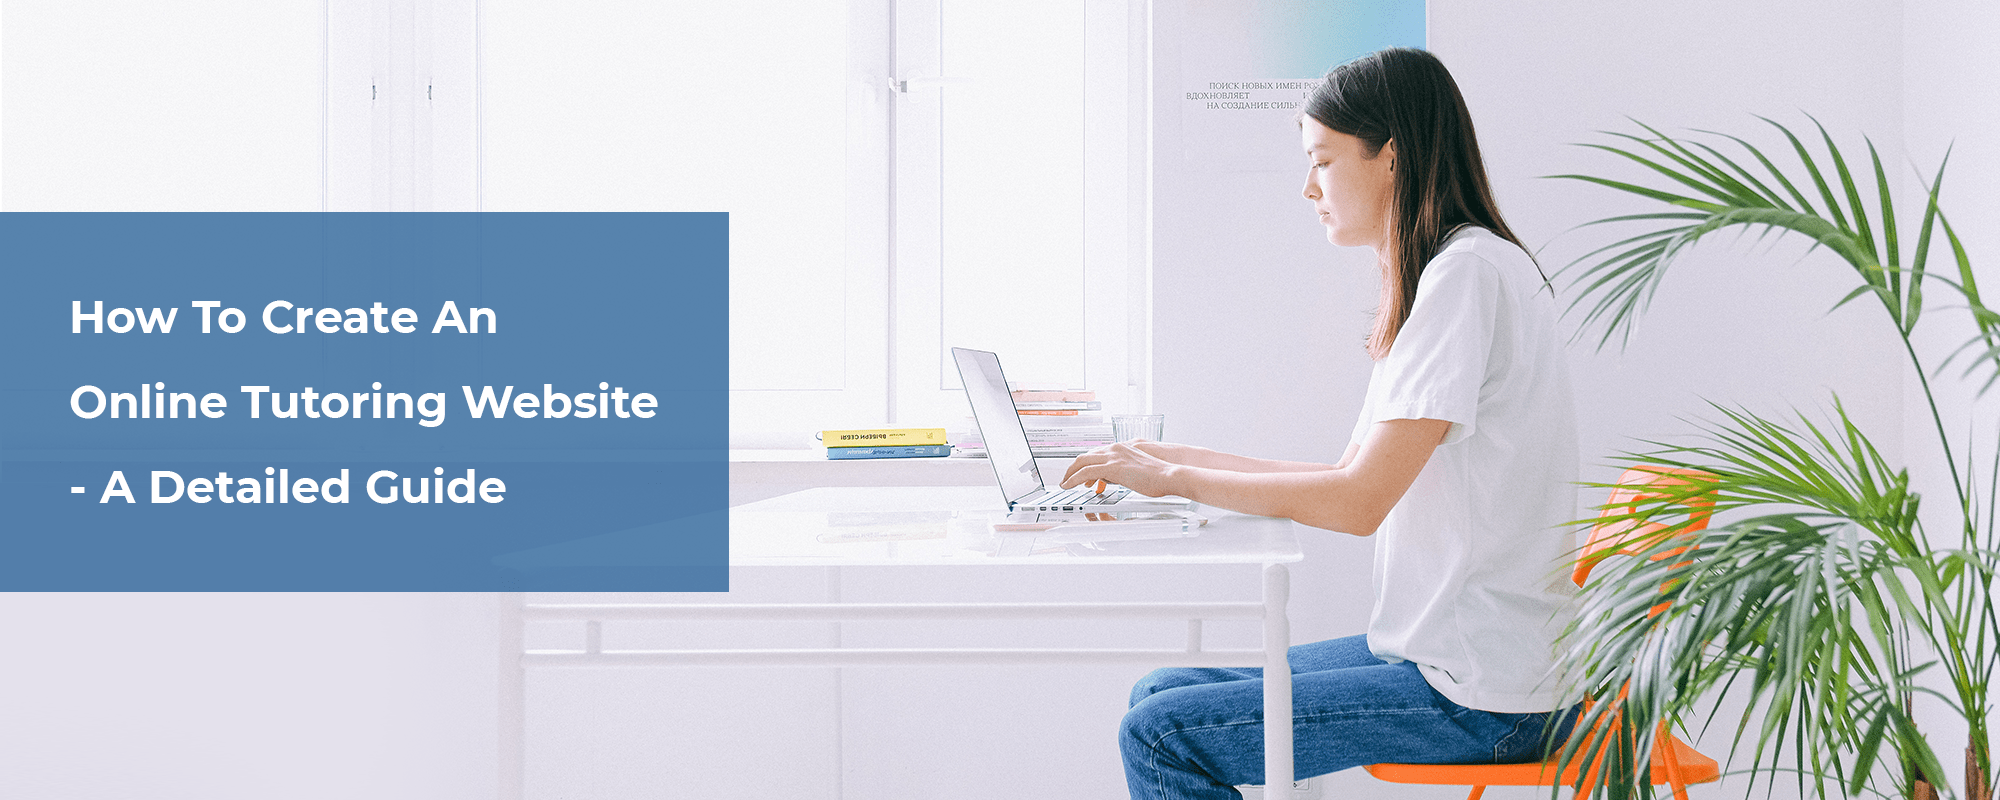 Creating an Online Tutoring Website : A Detailed Guide